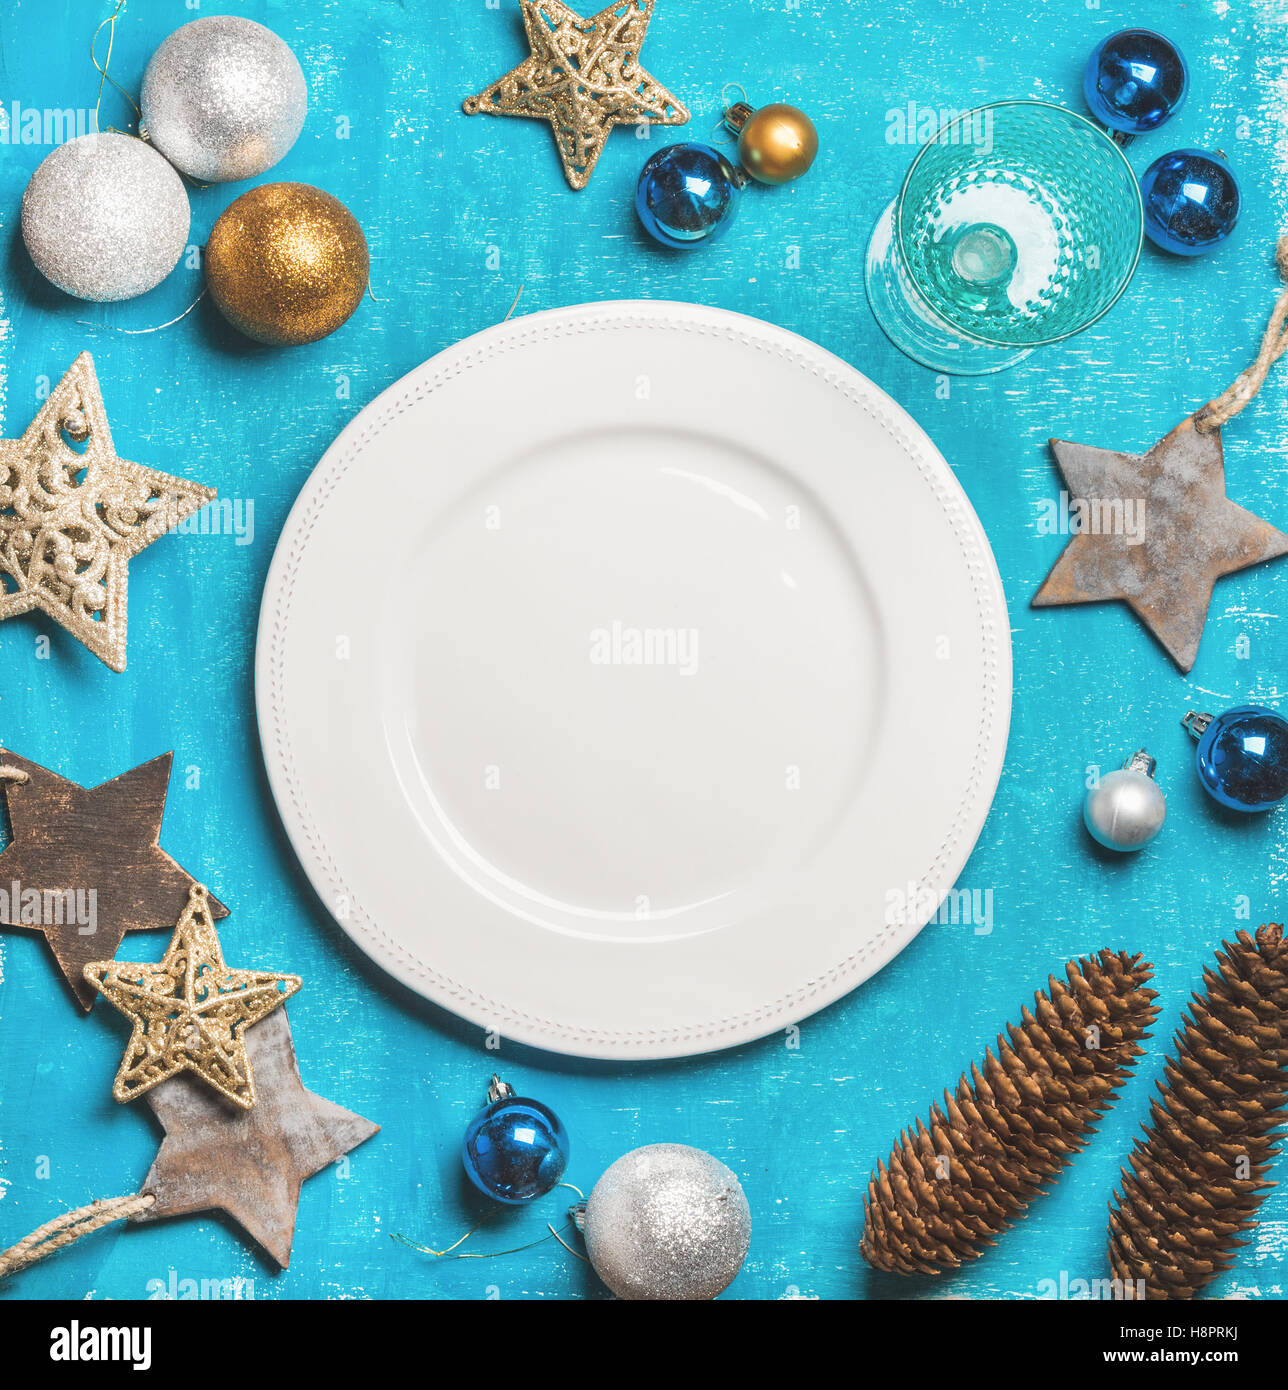 Christmas, New Year holiday background with white plate, copy space - Stock Image